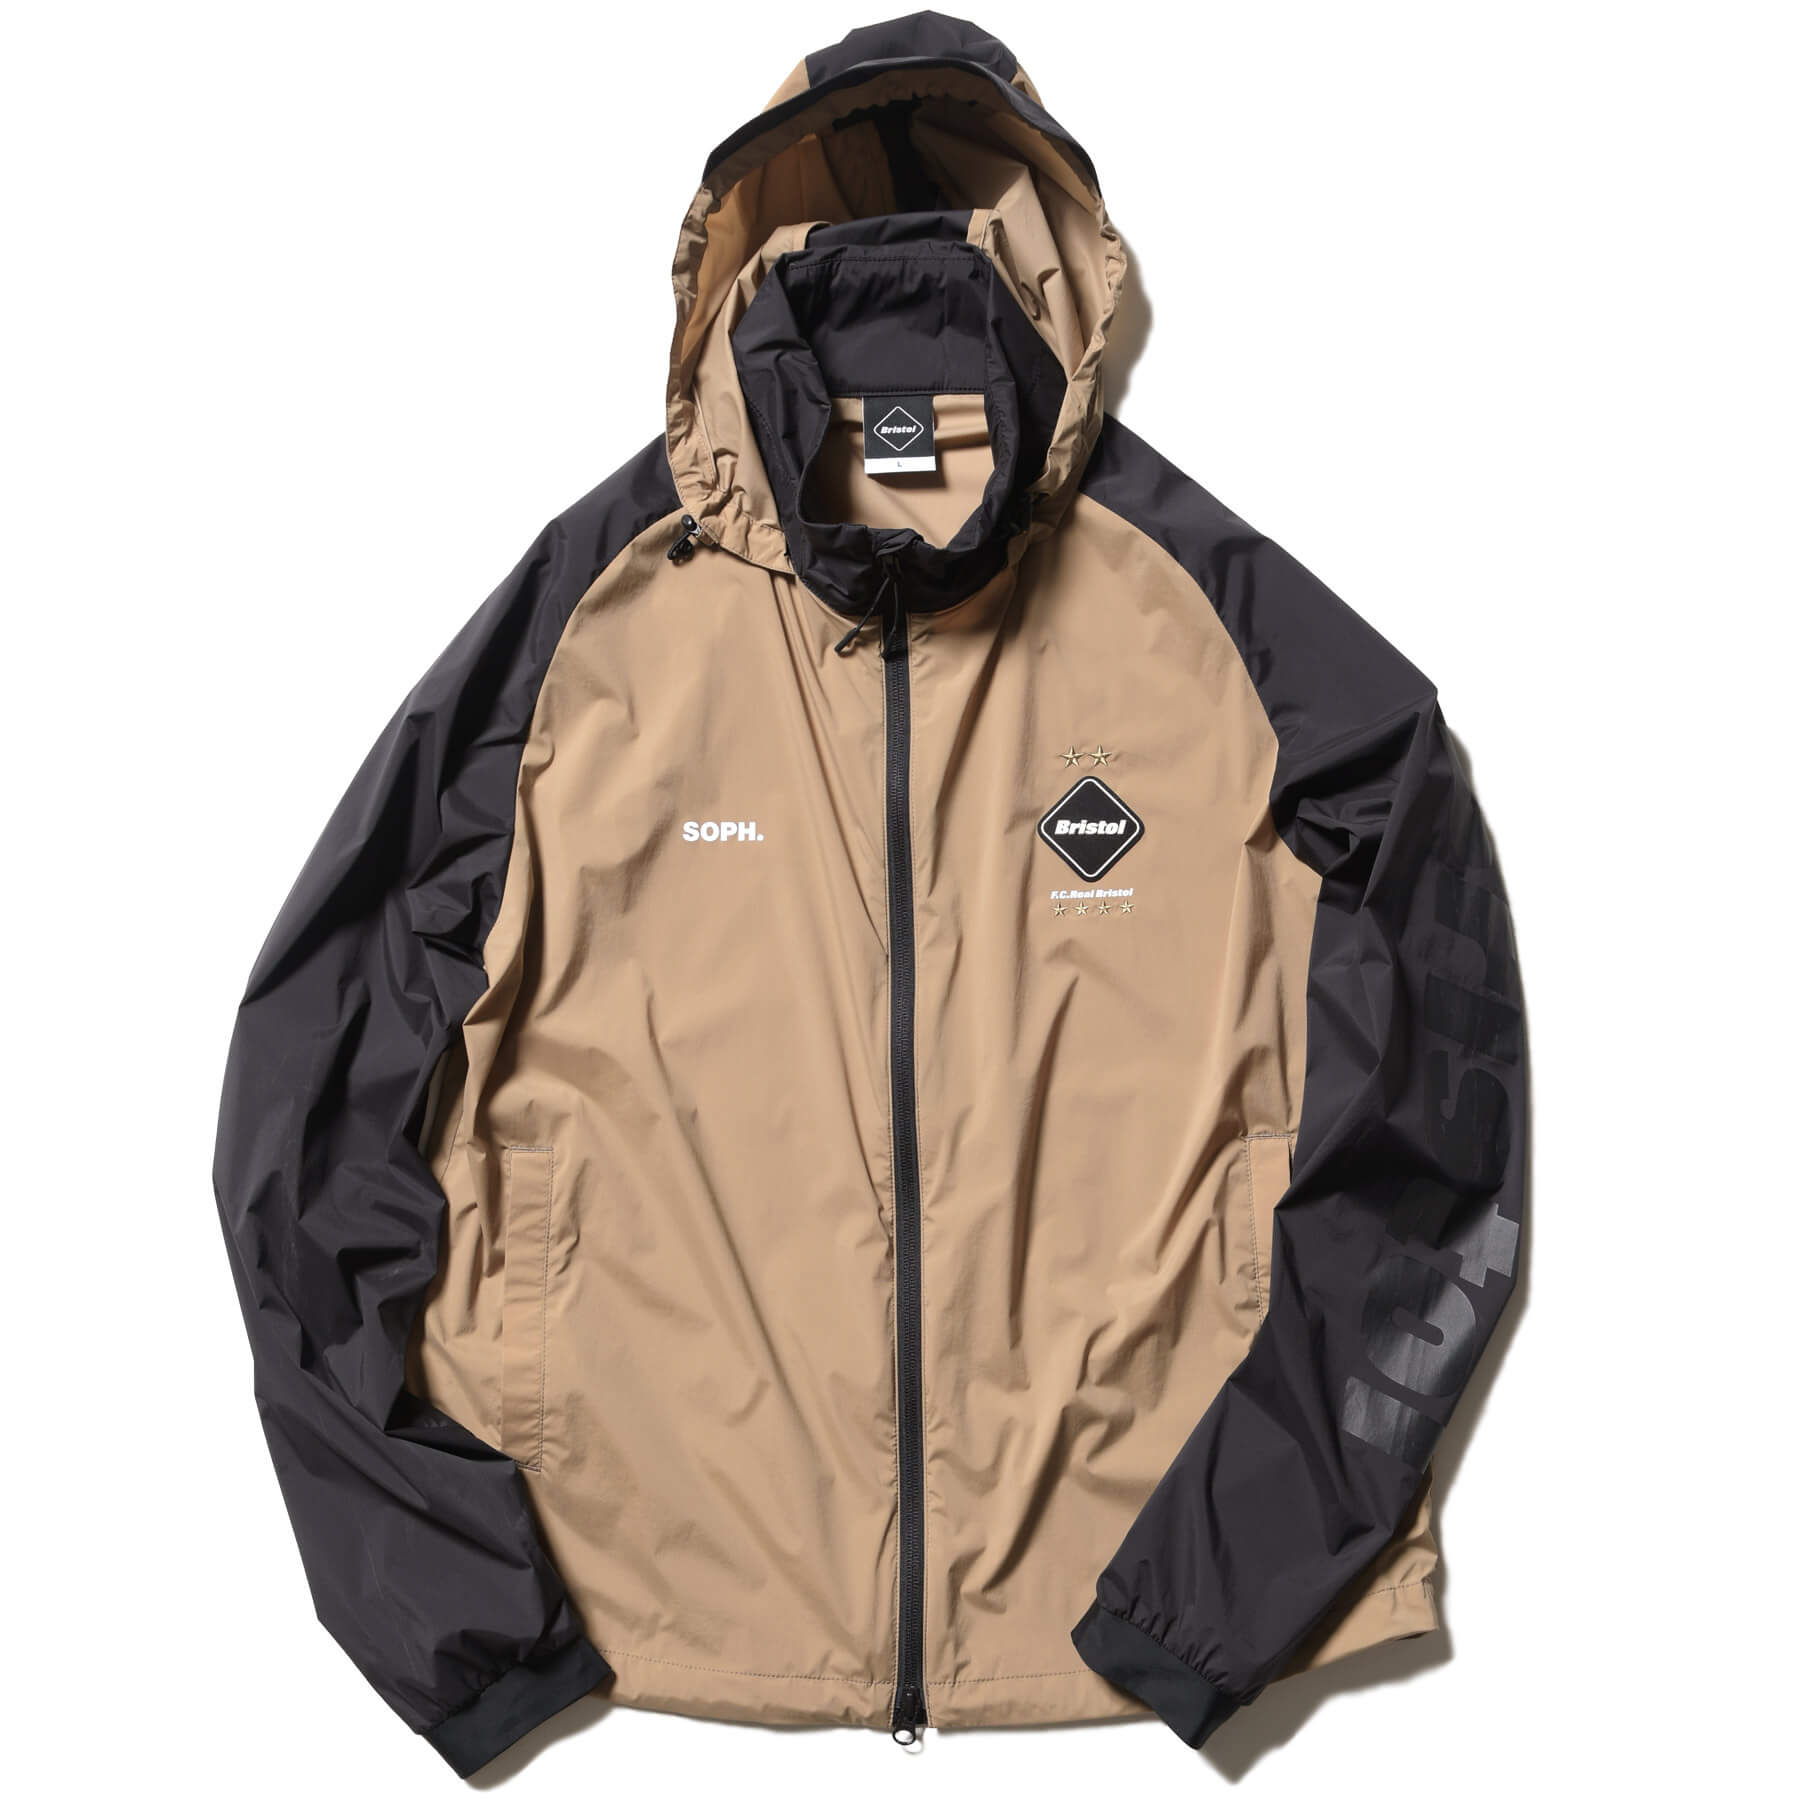 F.C. Real Bristol S/S 2020 Collection Stretch Light Weight Hooded Blouson